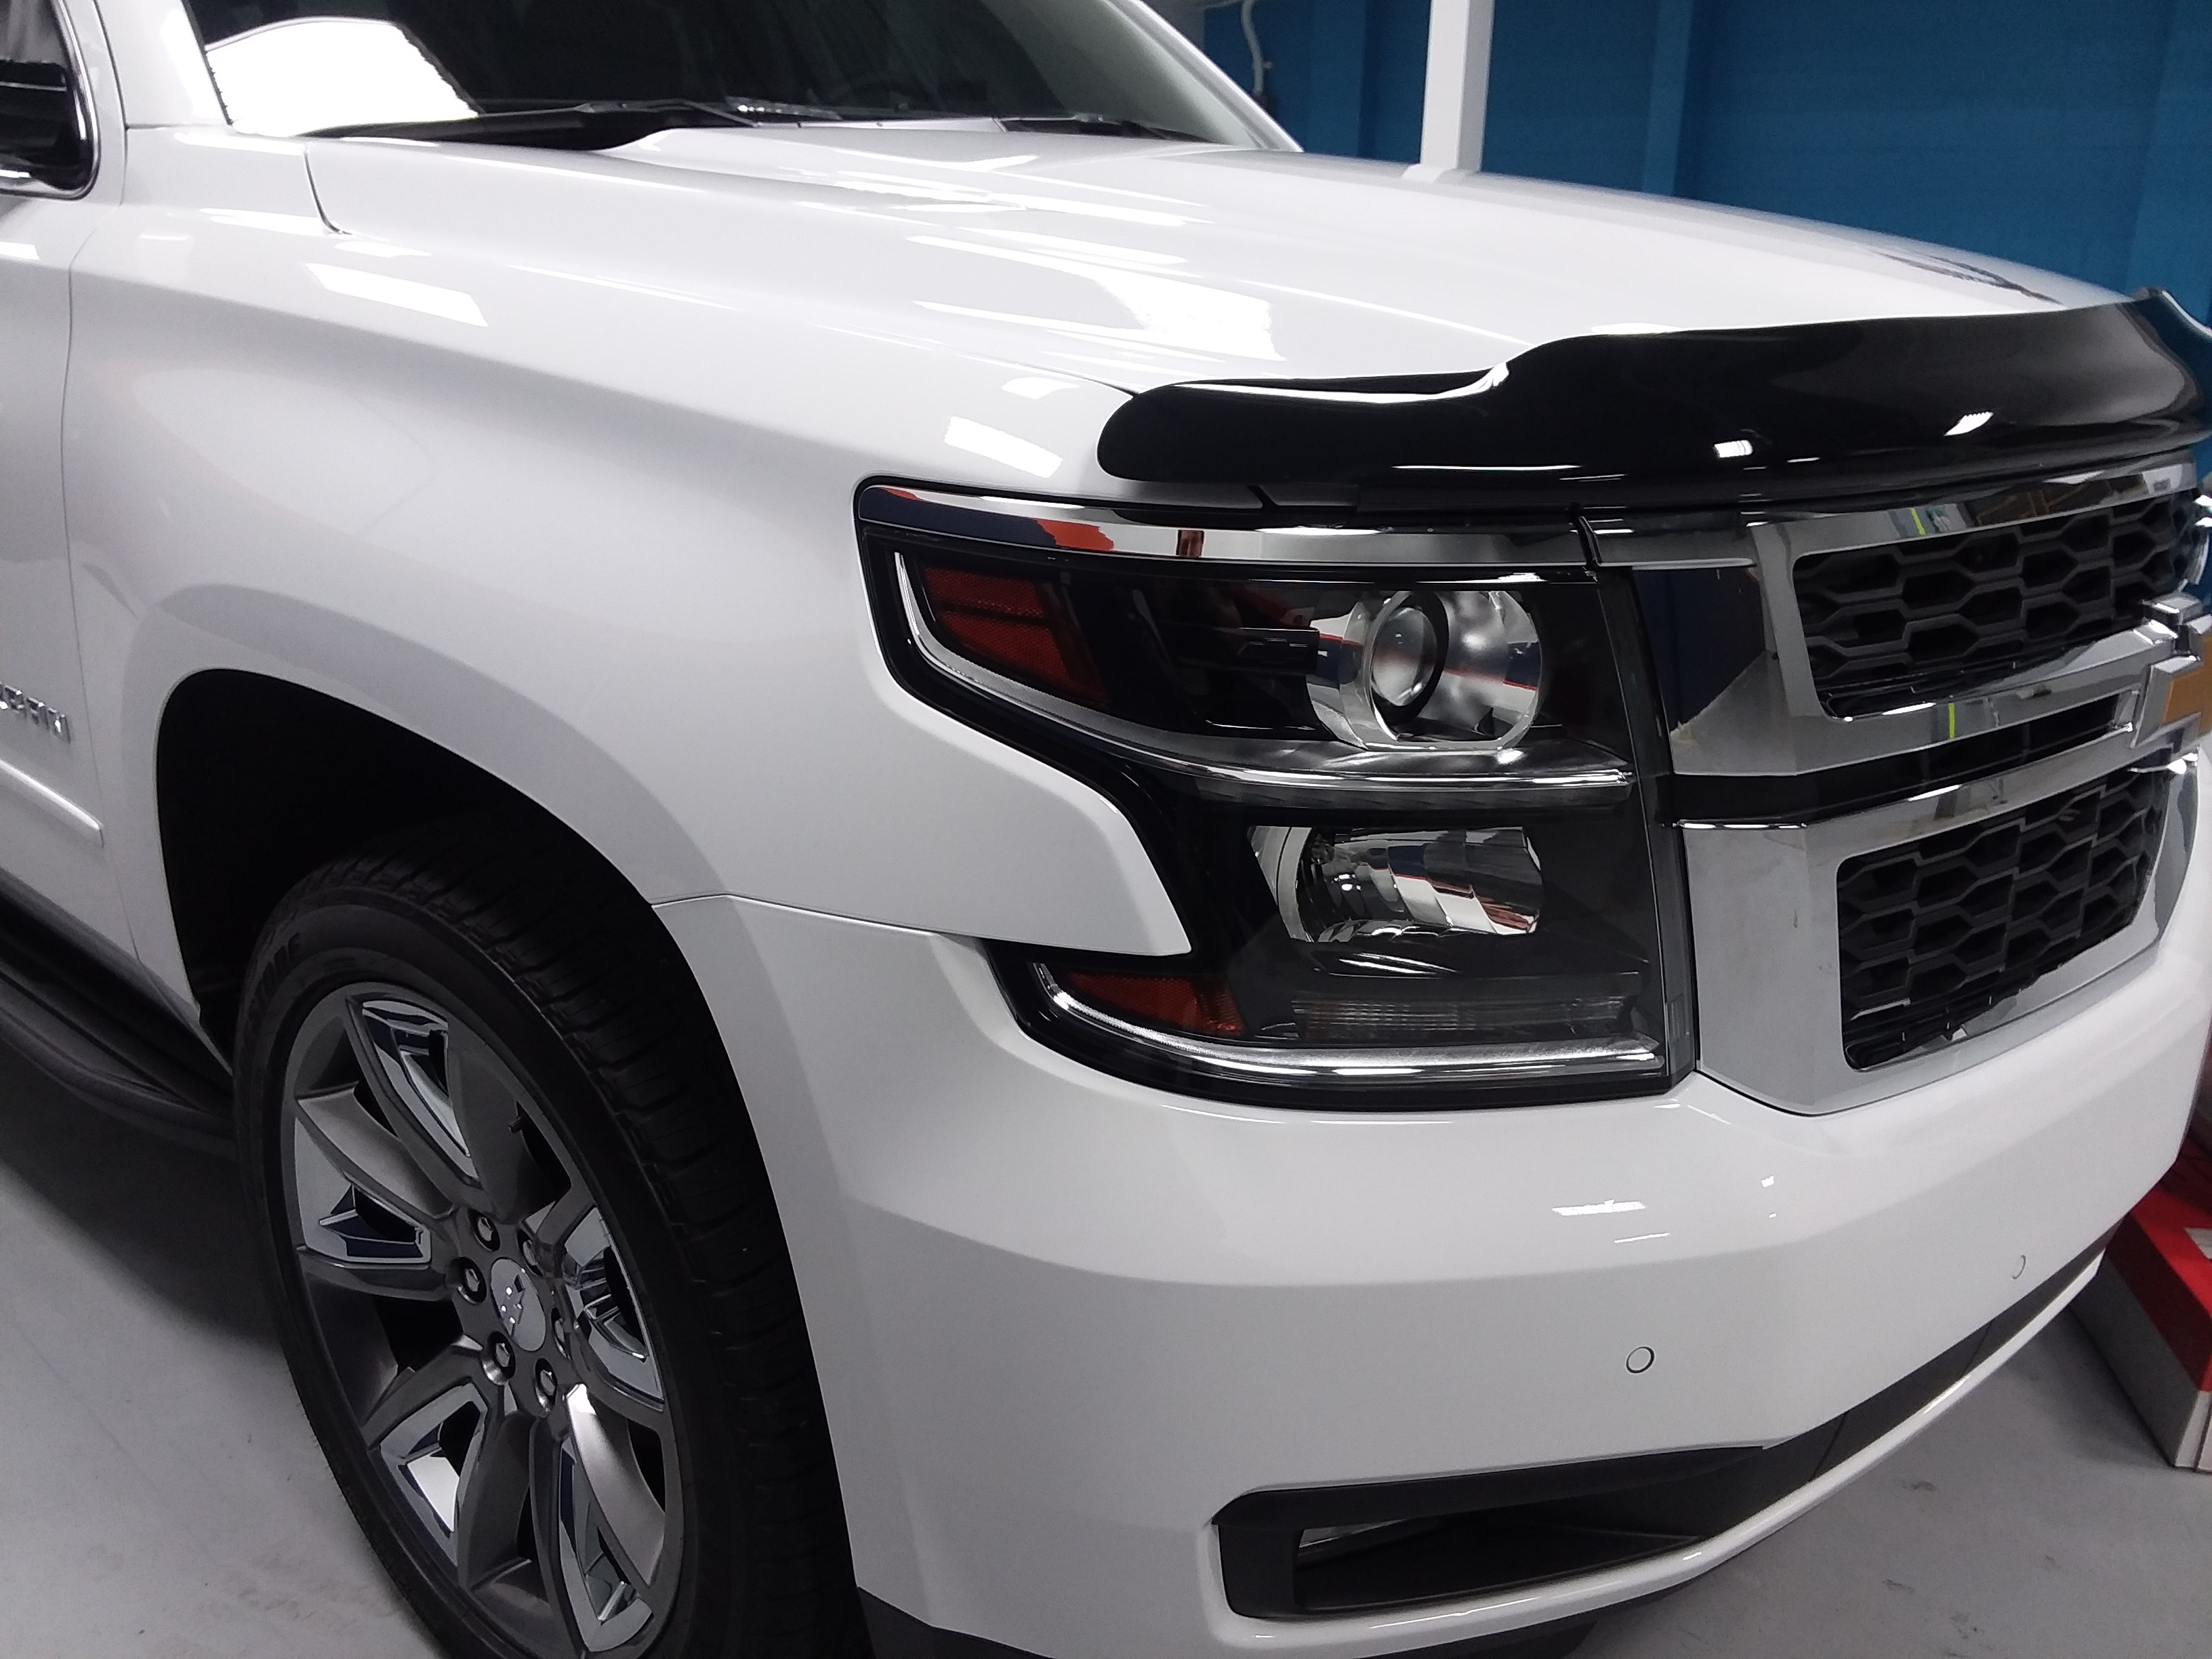 2018 Chevrolet Suburban Close Up PPF